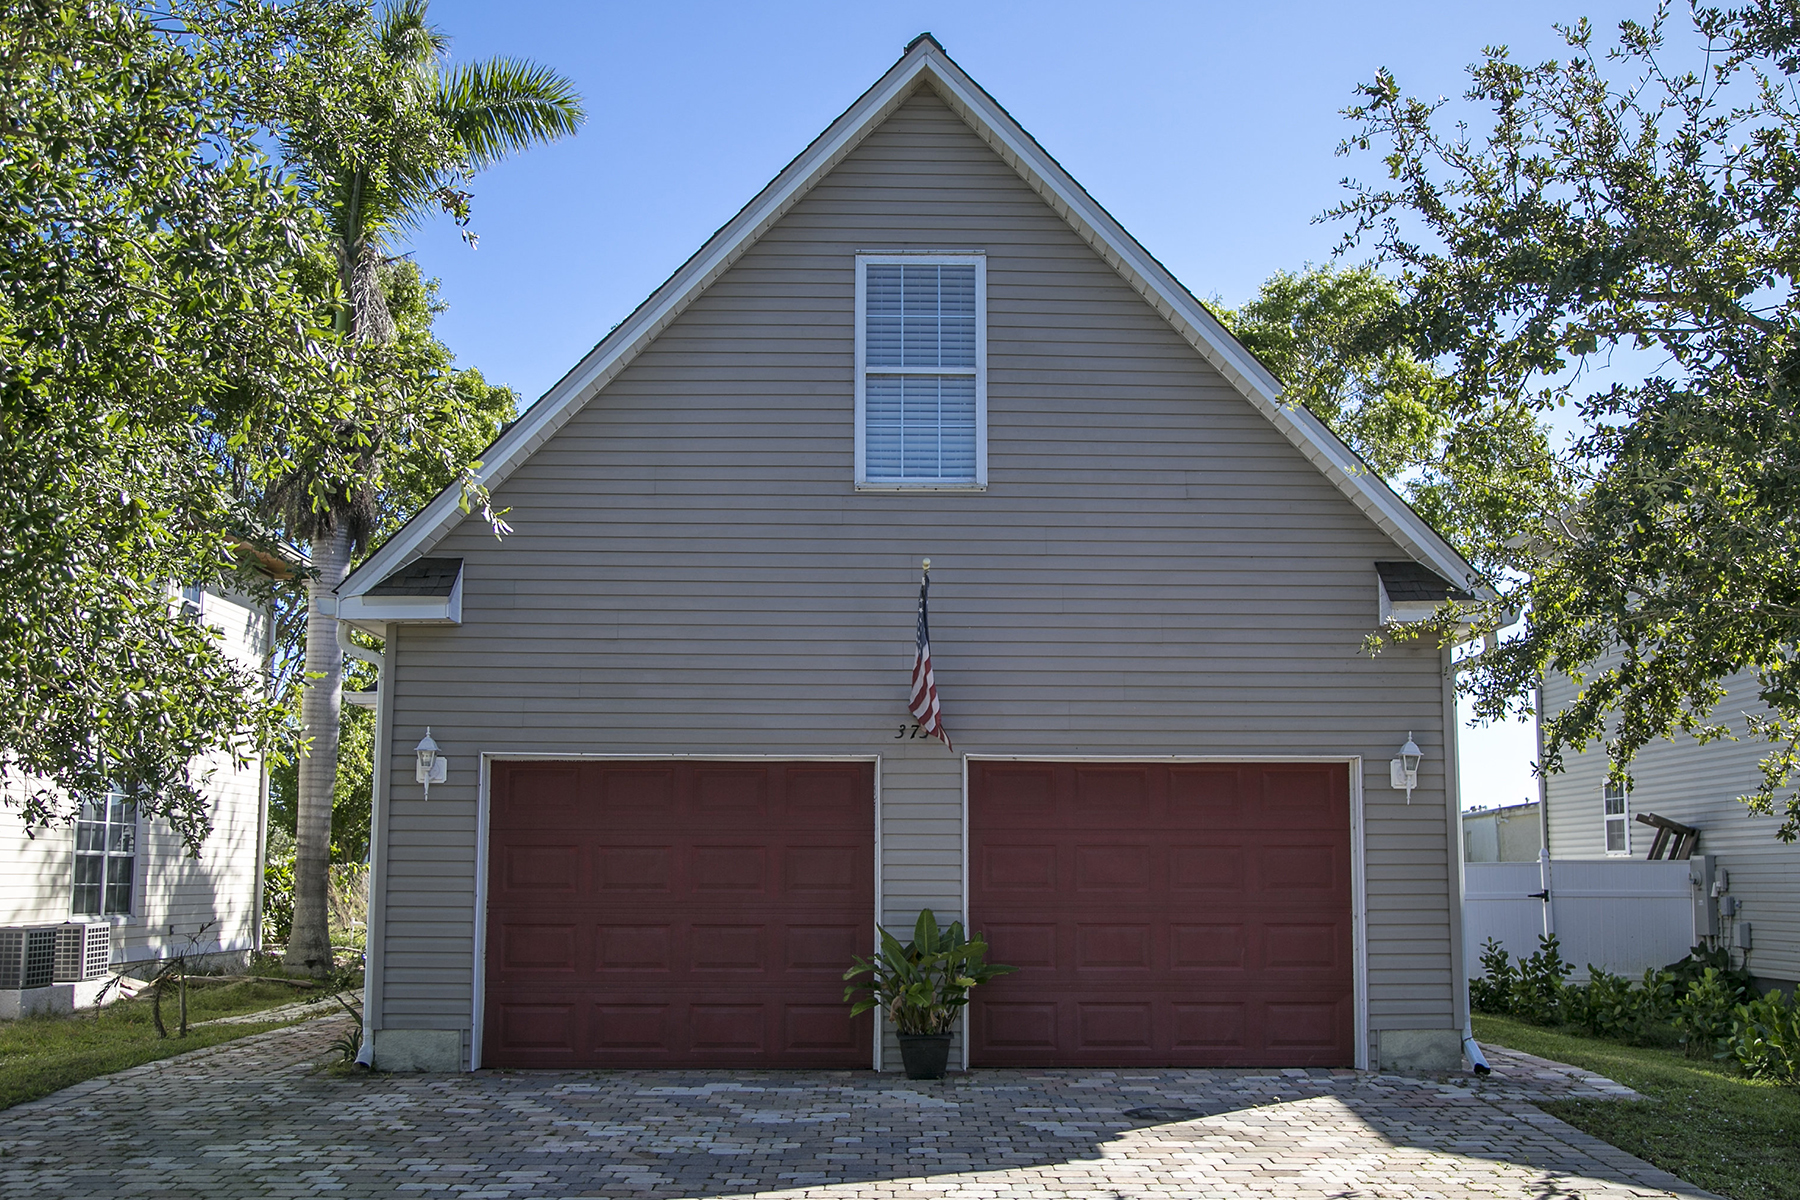 Single Family Home for Sale at LEAWOOD LAKES 373 Leawood Cir, Naples, Florida, 34104 United States